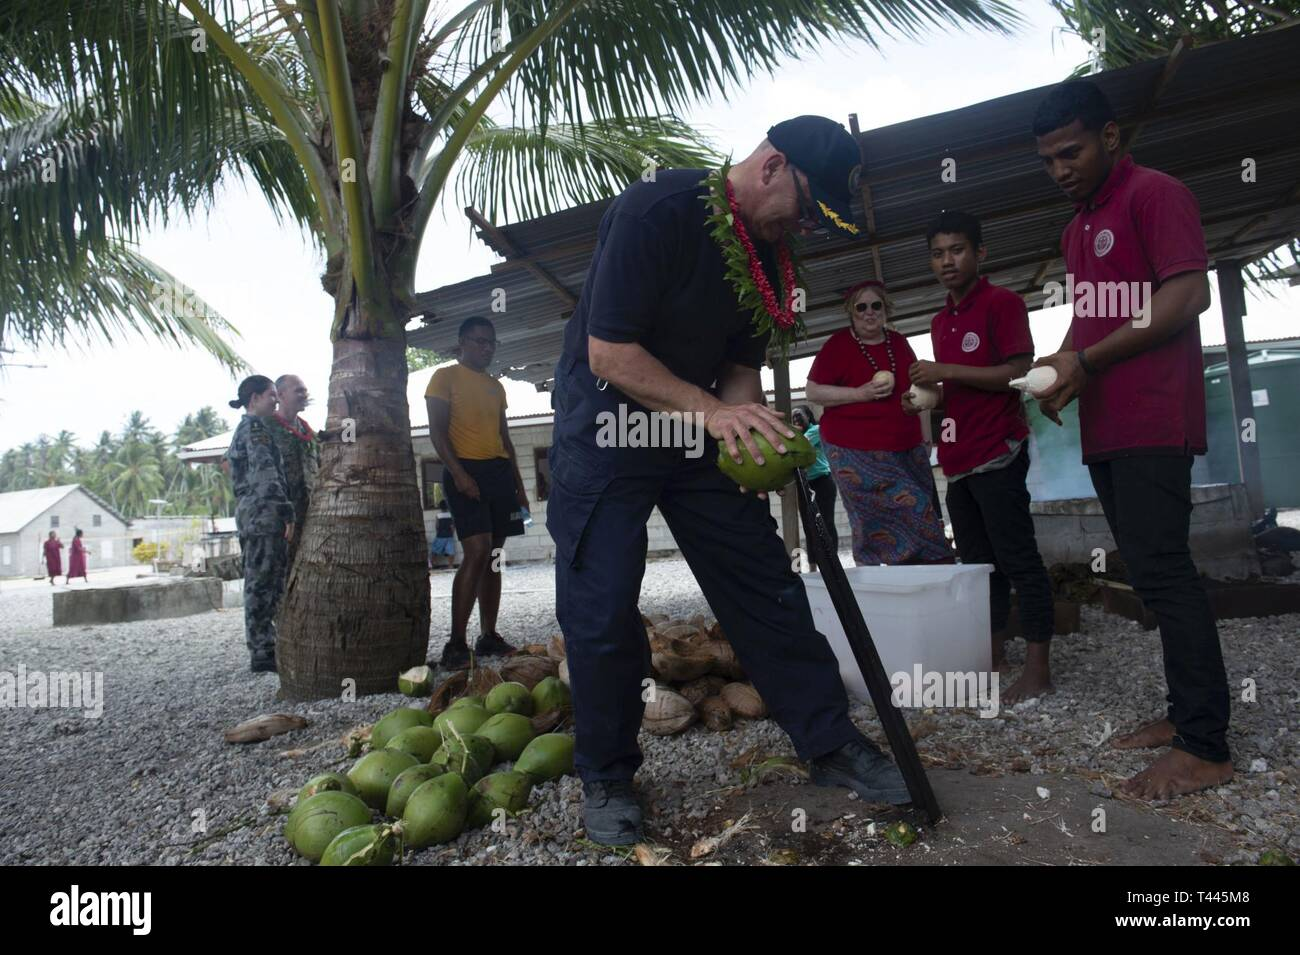 Coconut Works Stock Photos & Coconut Works Stock Images - Alamy